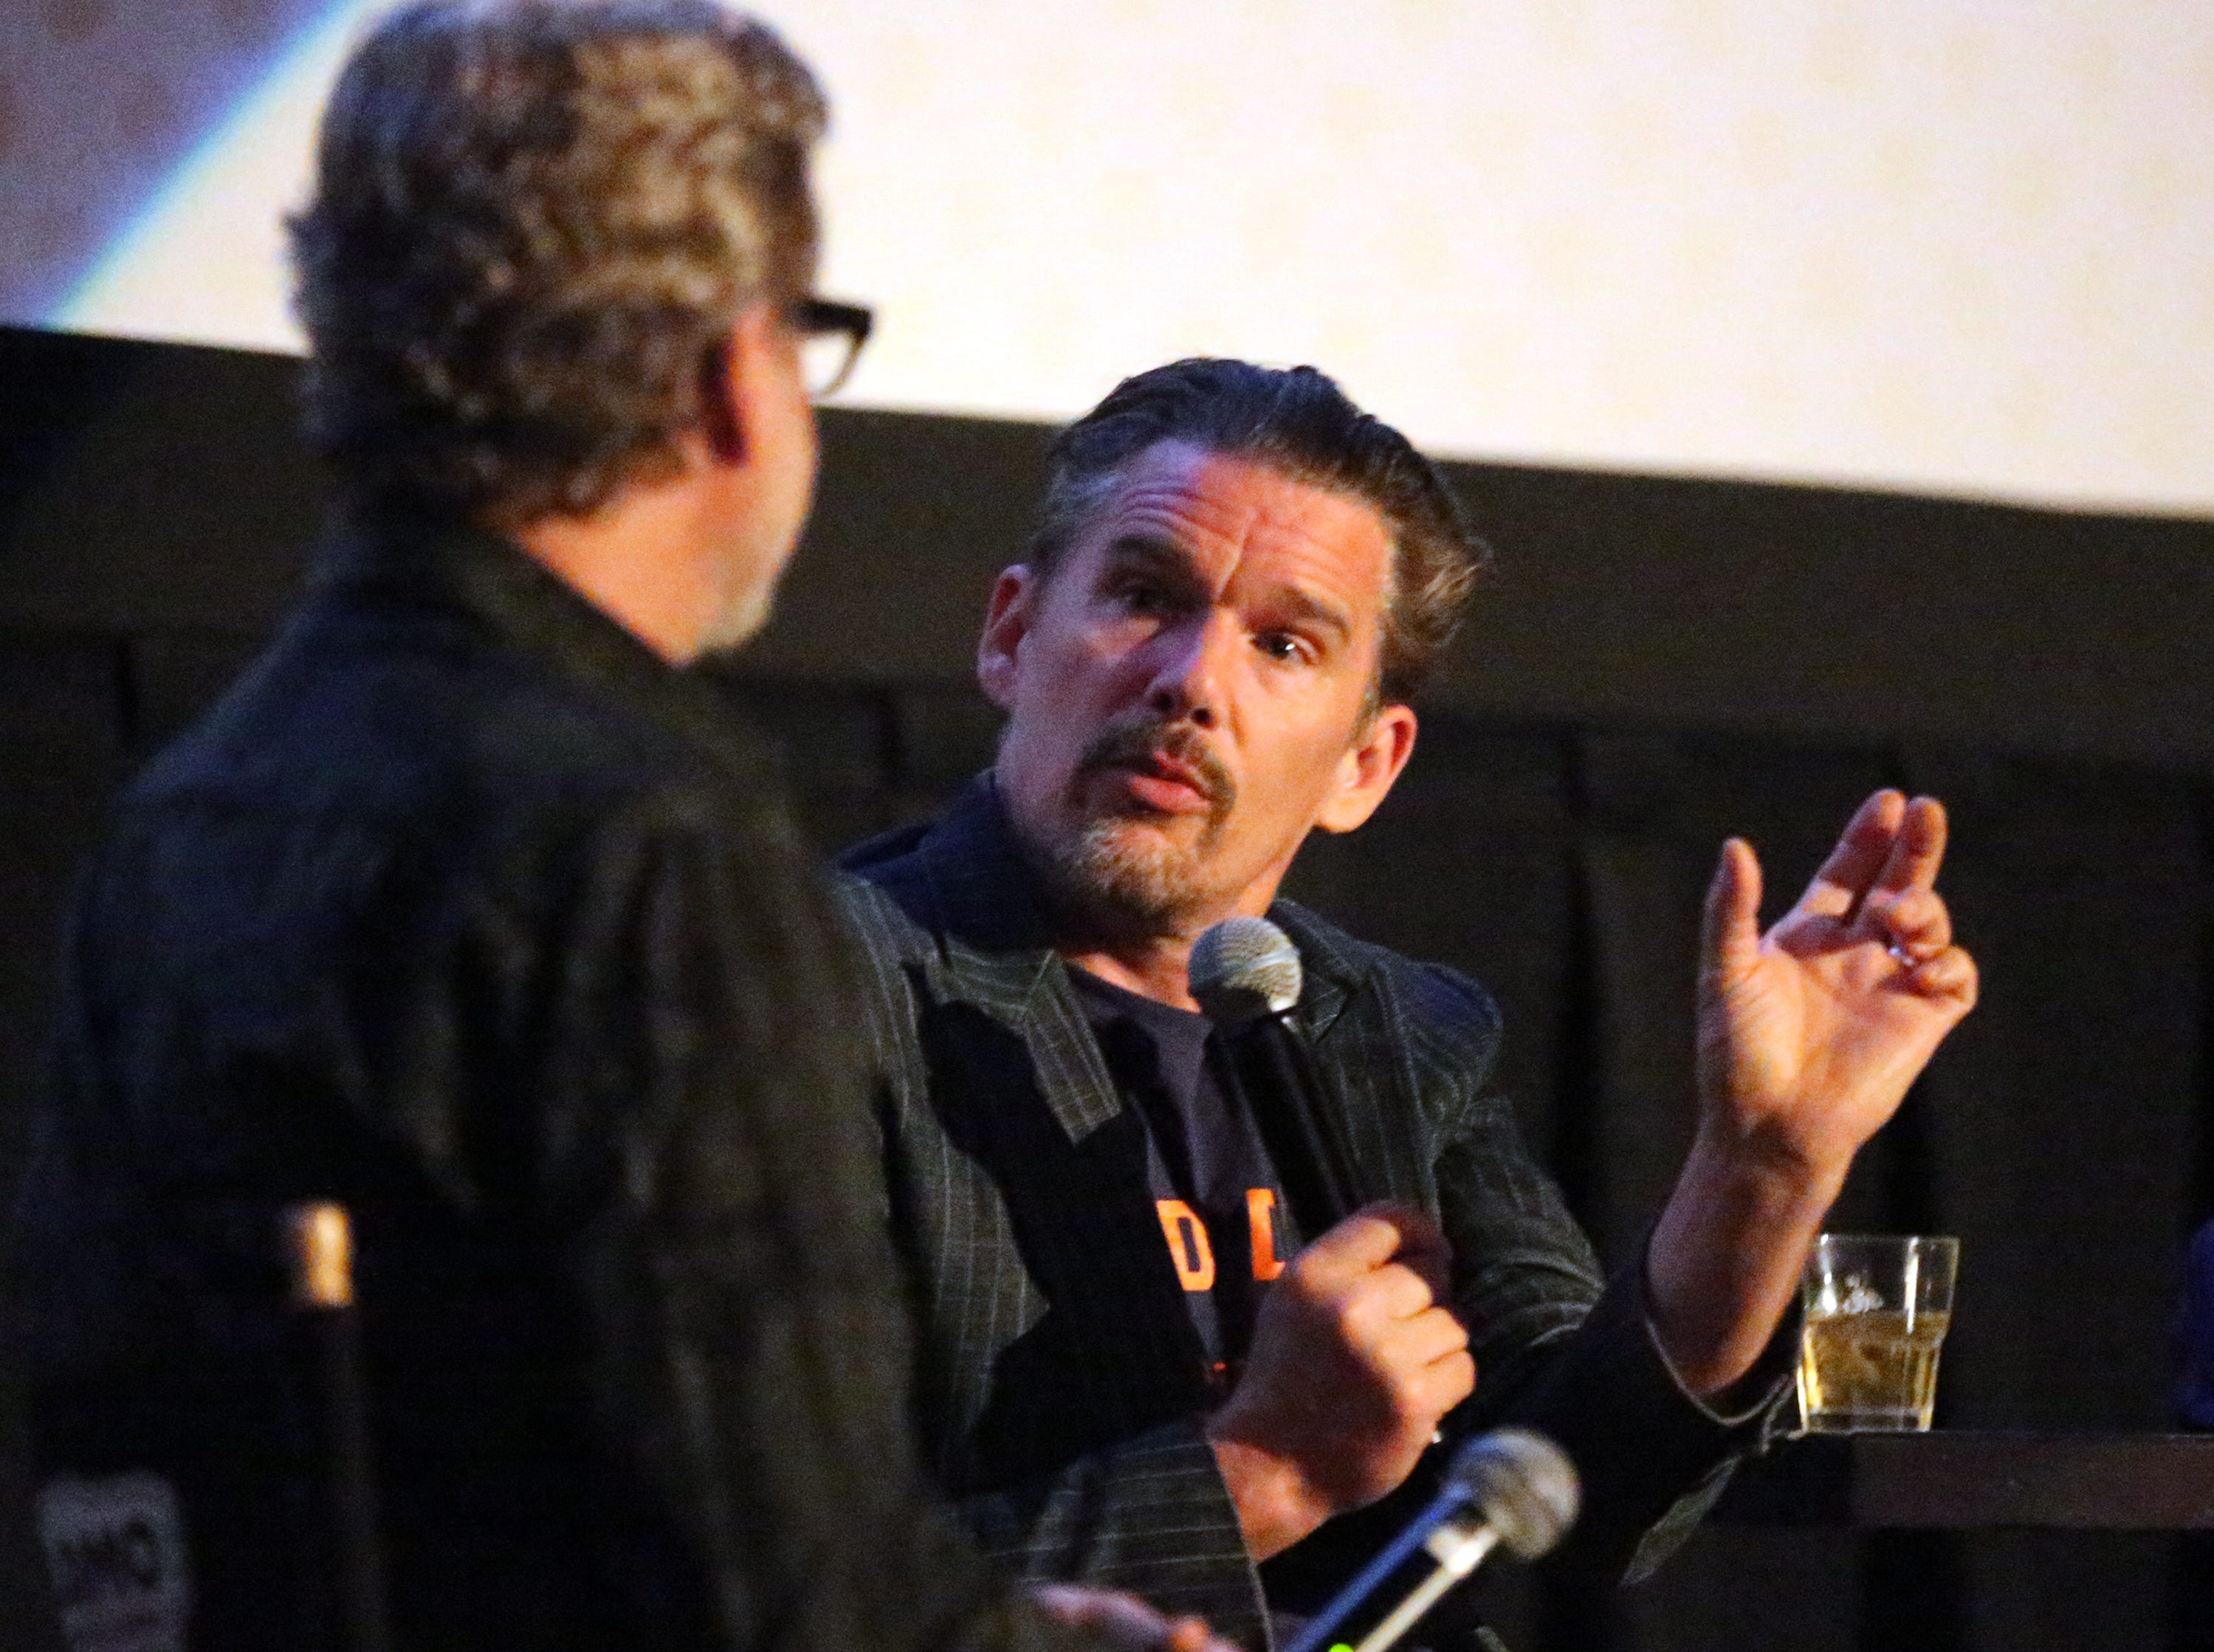 Actor and director Ethan Hawke, right, talks with guest interviewer Charles Horak following the screening of the movie 'Blaze' on Tuesday night at Alamo Drafthouse Cinema-Montecillo. Hawke directed the movie, starring his longtime friend Ben Dickey.